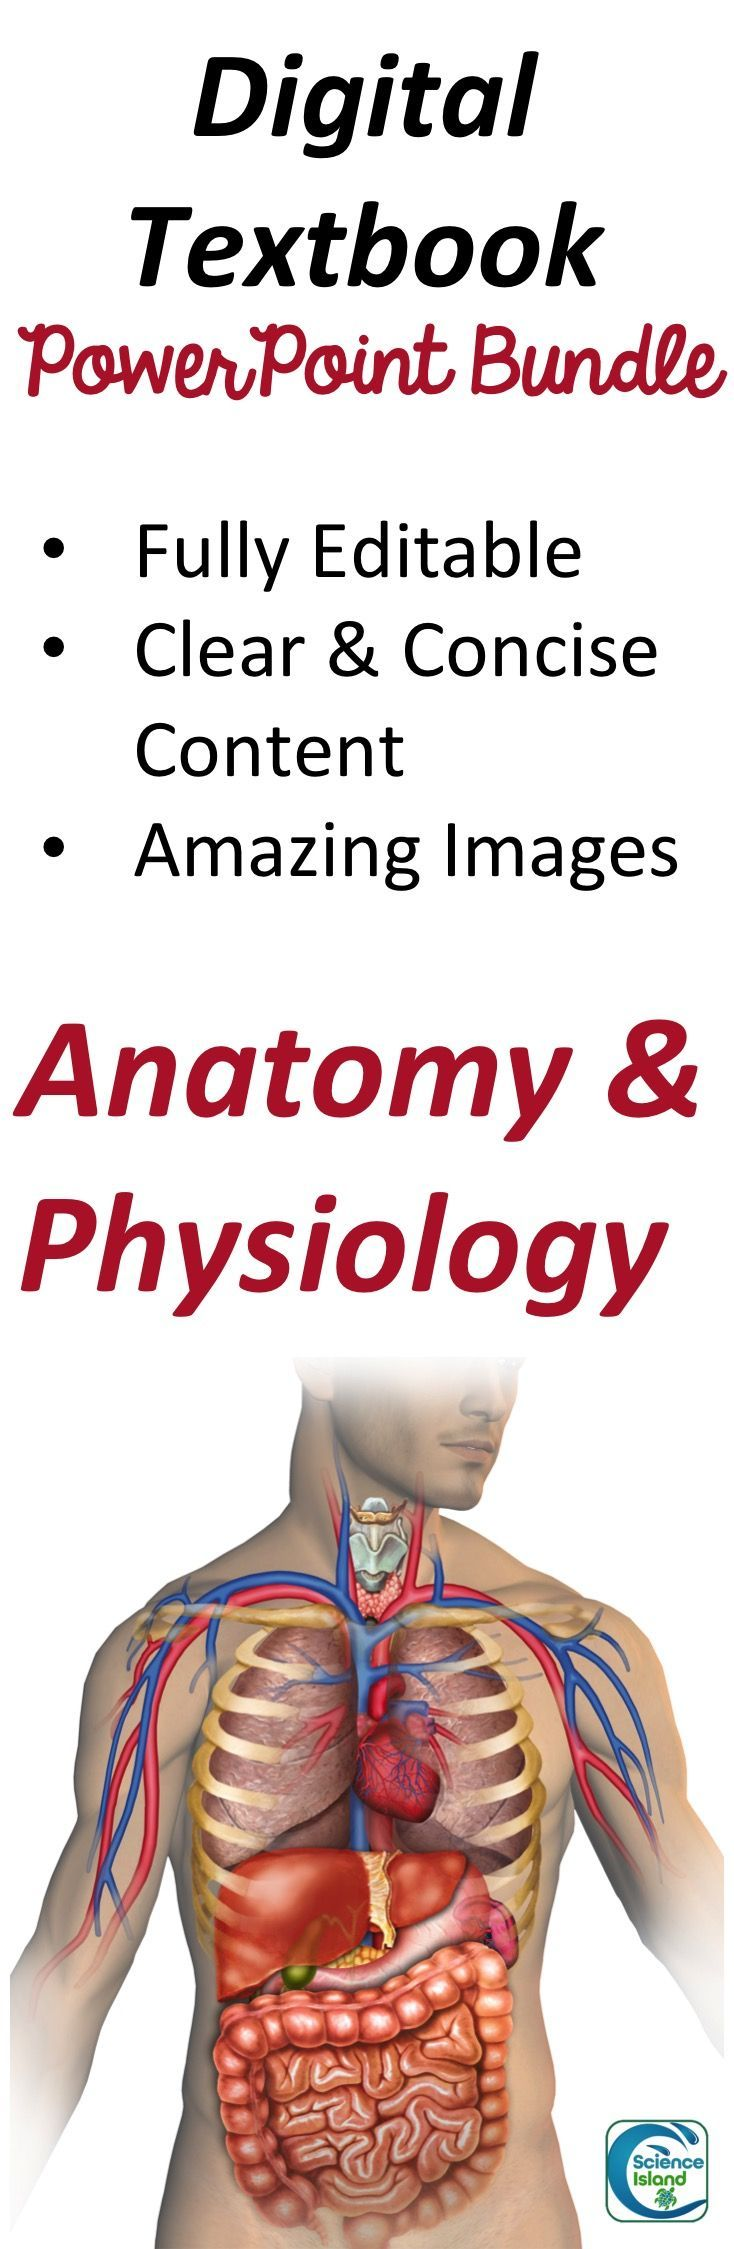 Anatomy and Physiology PowerPoint Bundle Digital Textbook | Science ...